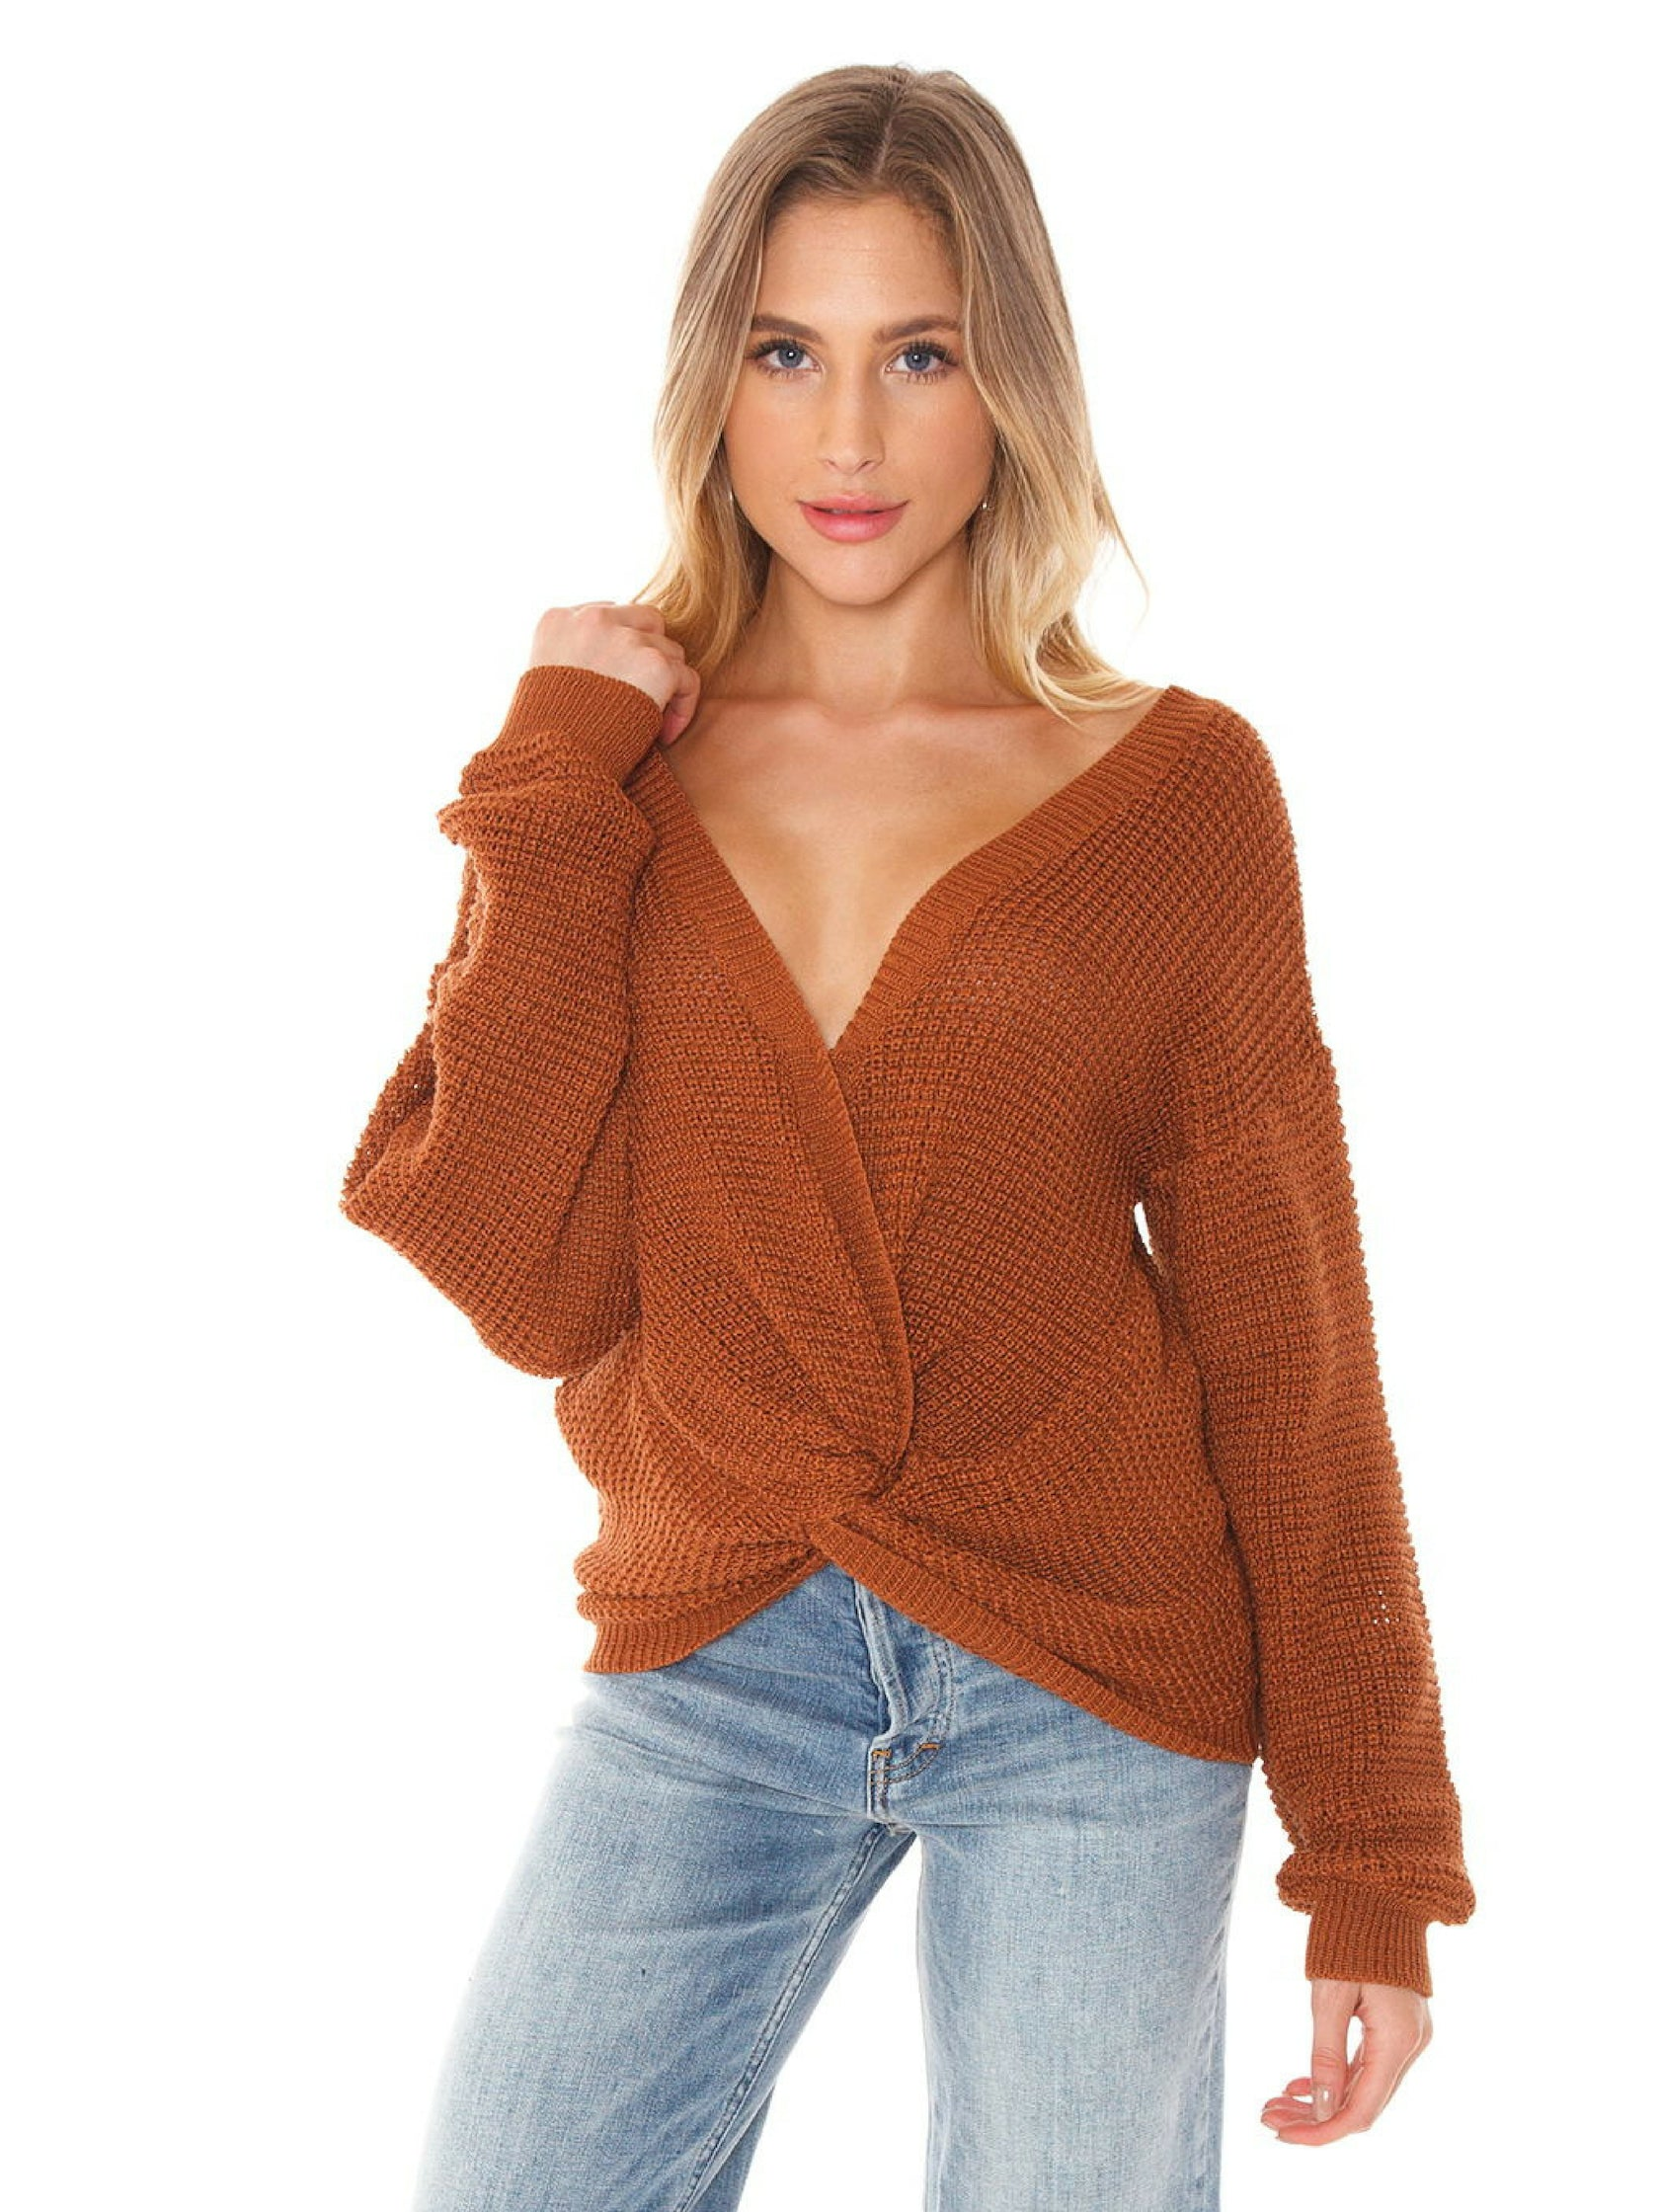 Woman wearing a sweater rental from FASHIONPASS called Kylie Twist Front Sweater